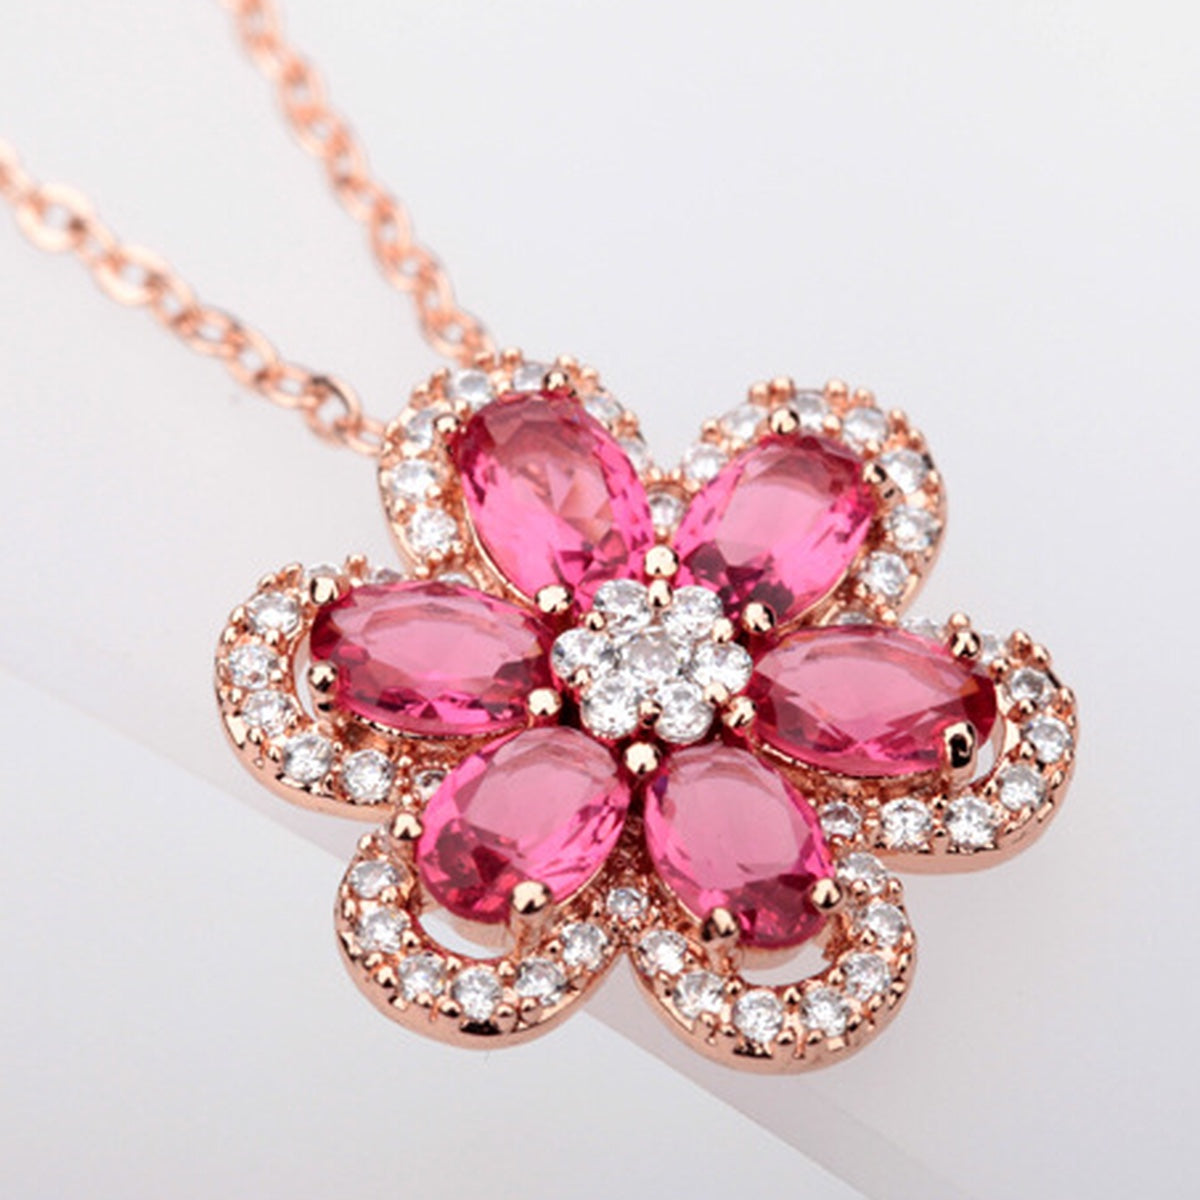 Ruby Blossom Necklace - GRACE BOUTIQUE UK women jewellery necklace earring bracelet ring broach scarf wrap shawl accessories